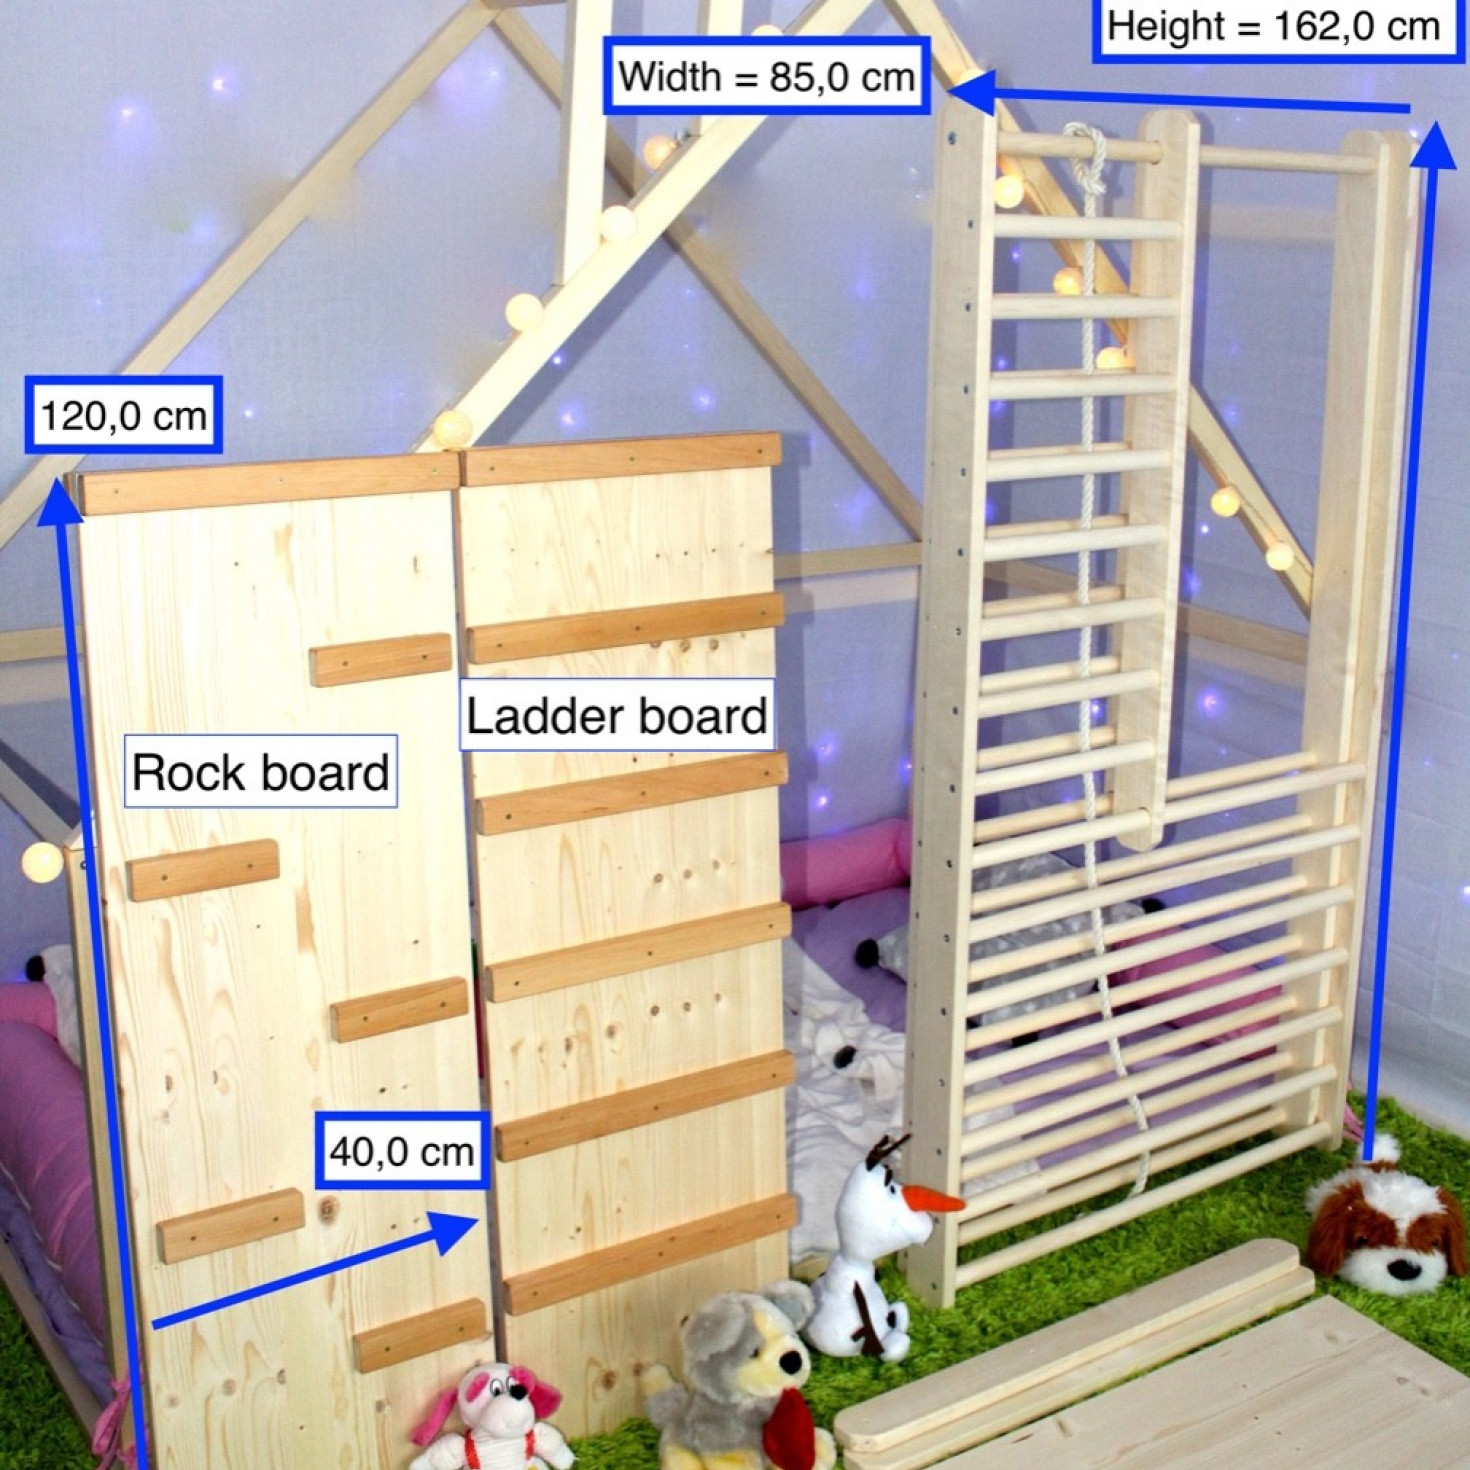 A climbing ladder for toddlers in a disassembled form